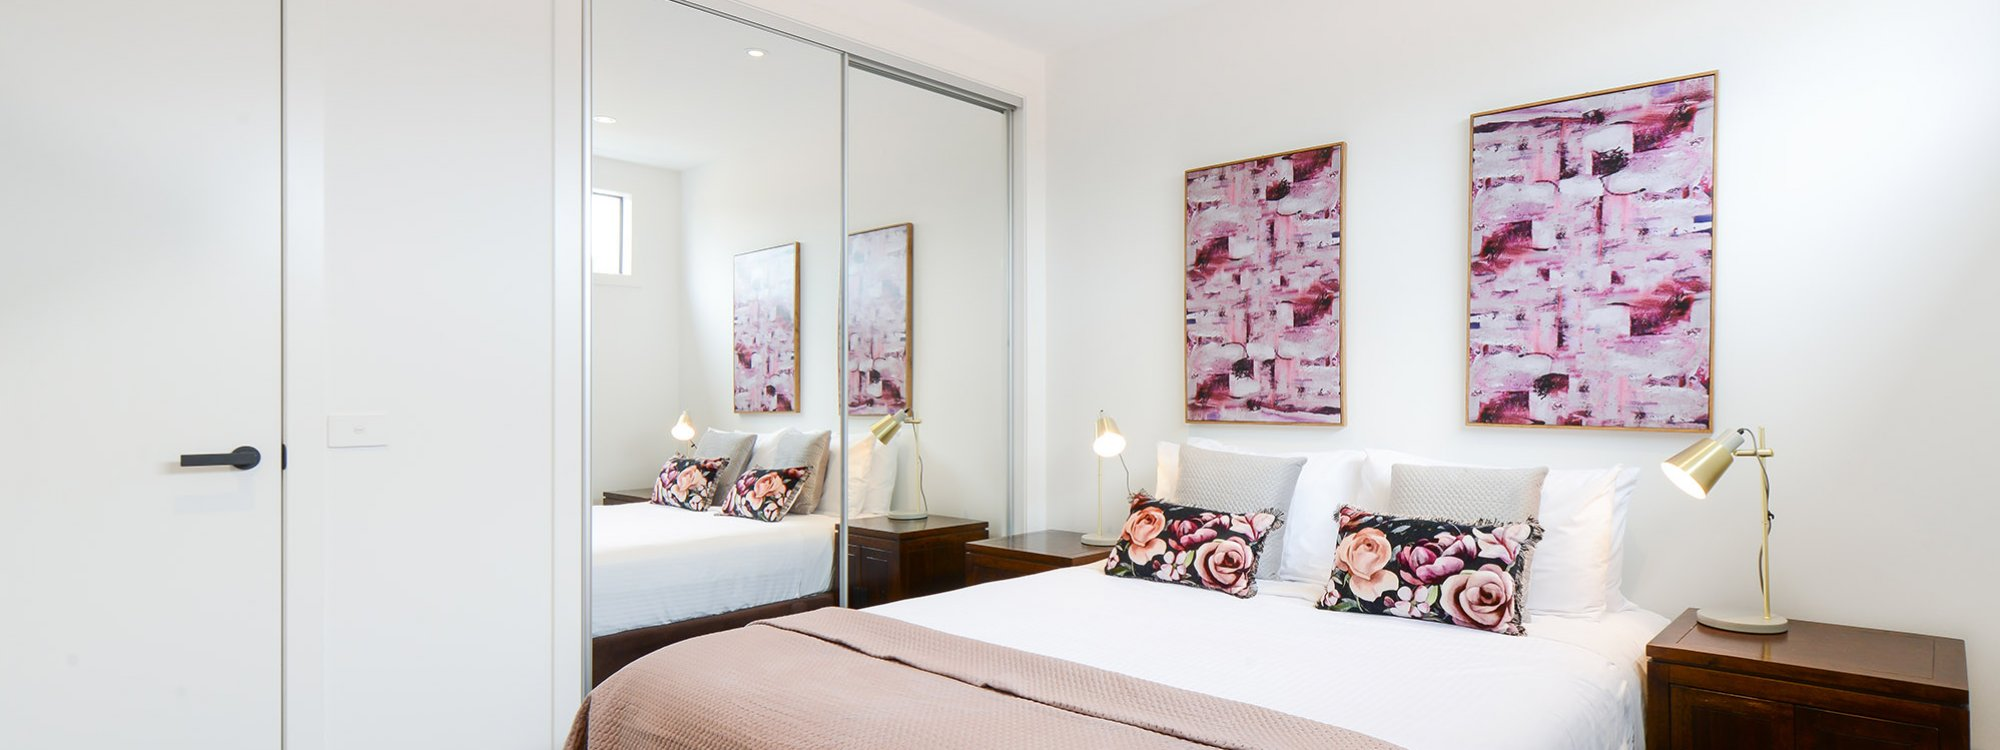 Murrumbeena Place 1 - Murrumbeena - Bedroom 2c